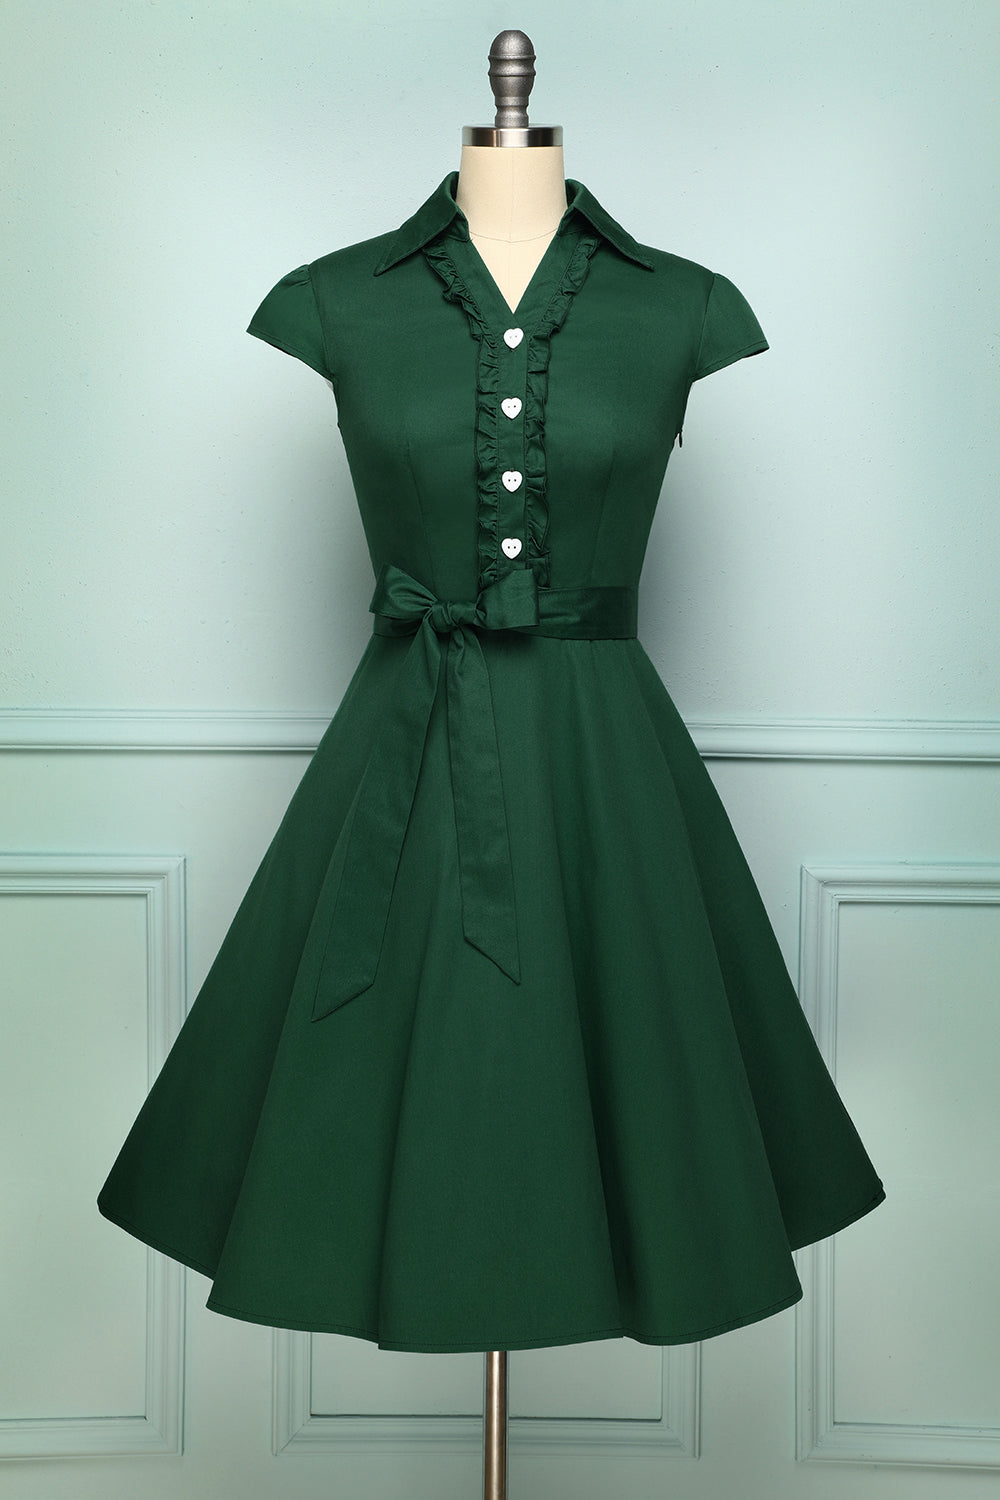 Dark Green 50's Vintage Style Lapel Collar Swing Dress with Heart-Shaped Buttons